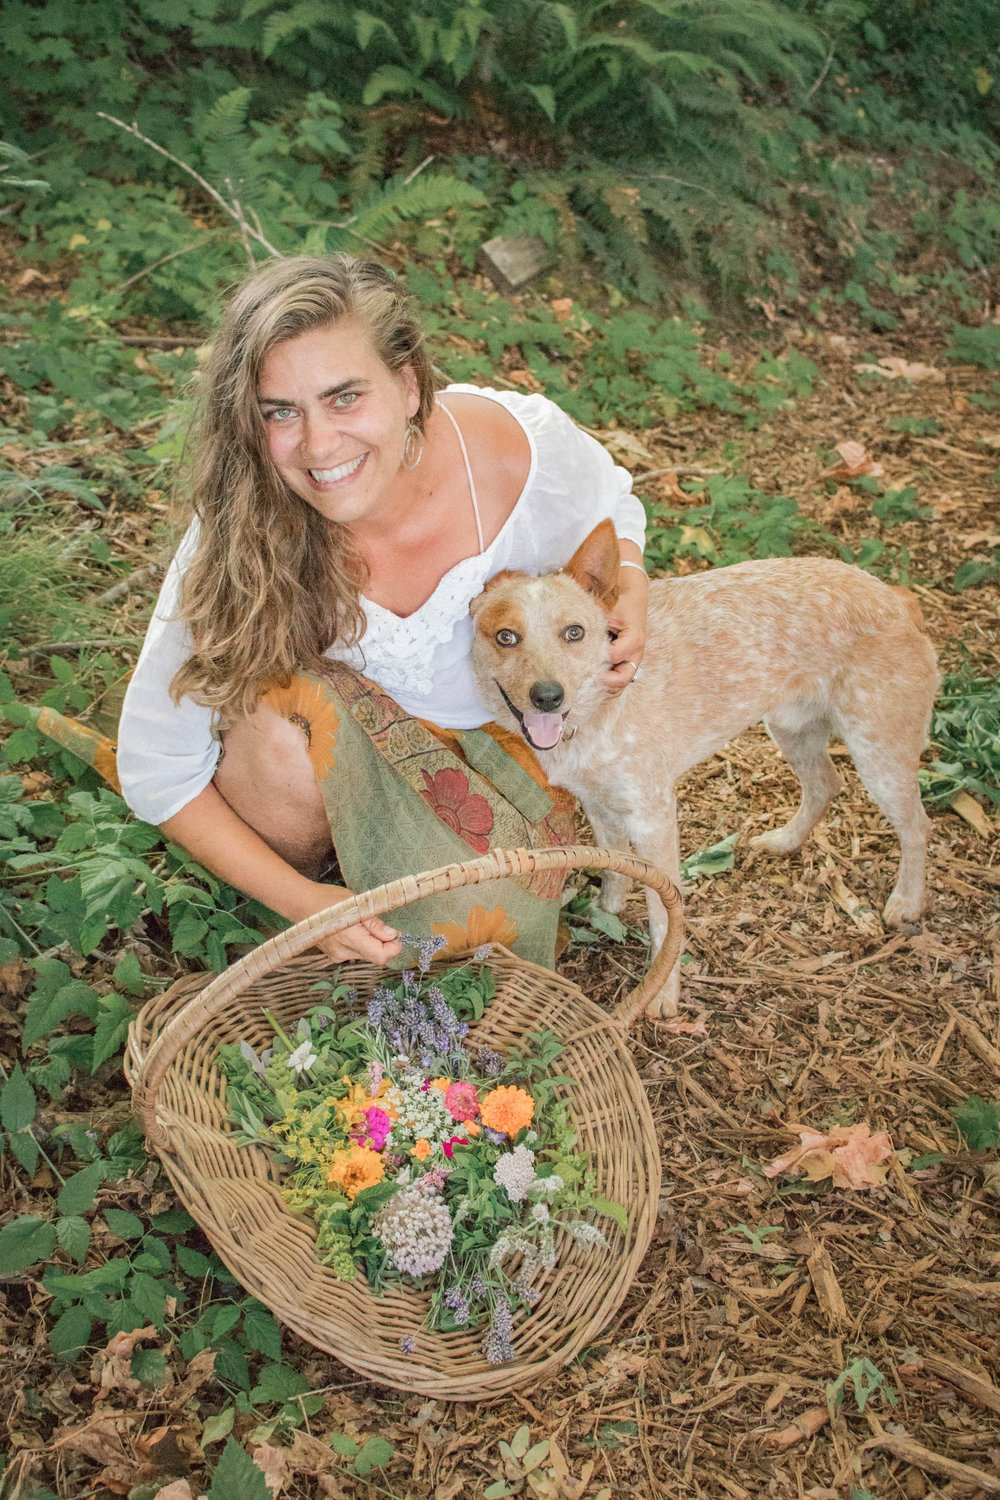 Harvesting - Wildcrafting is a passion of Dr. Alicia's. Pictured here is one of her dogs, Trapper Keeper, who accompanies Dr. Alicia while she works around the farm.